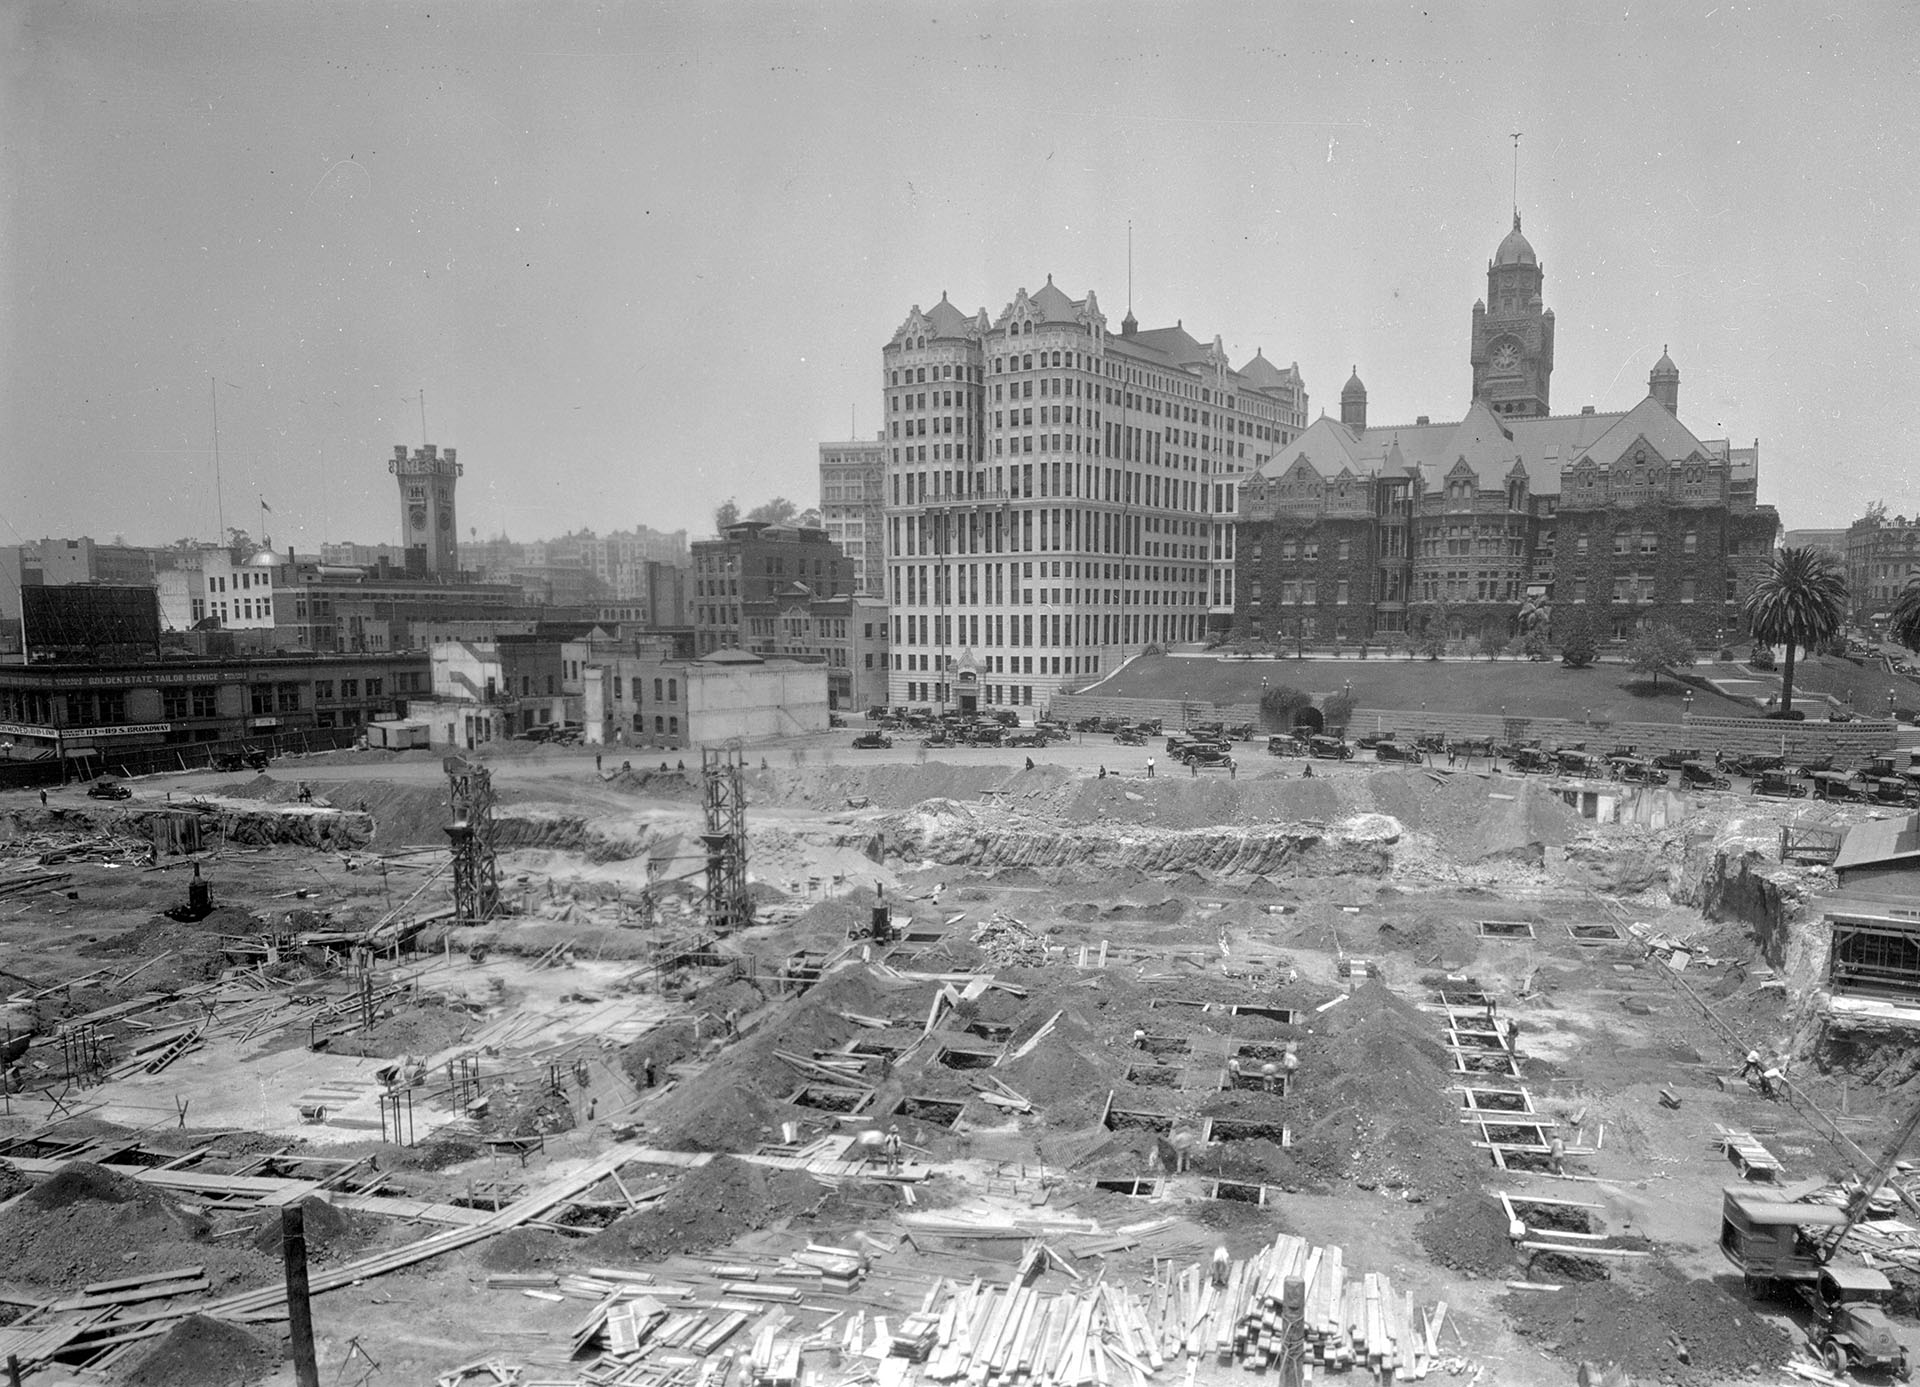 Excavation work for the construction of Los Angeles City Hall, circa 1926